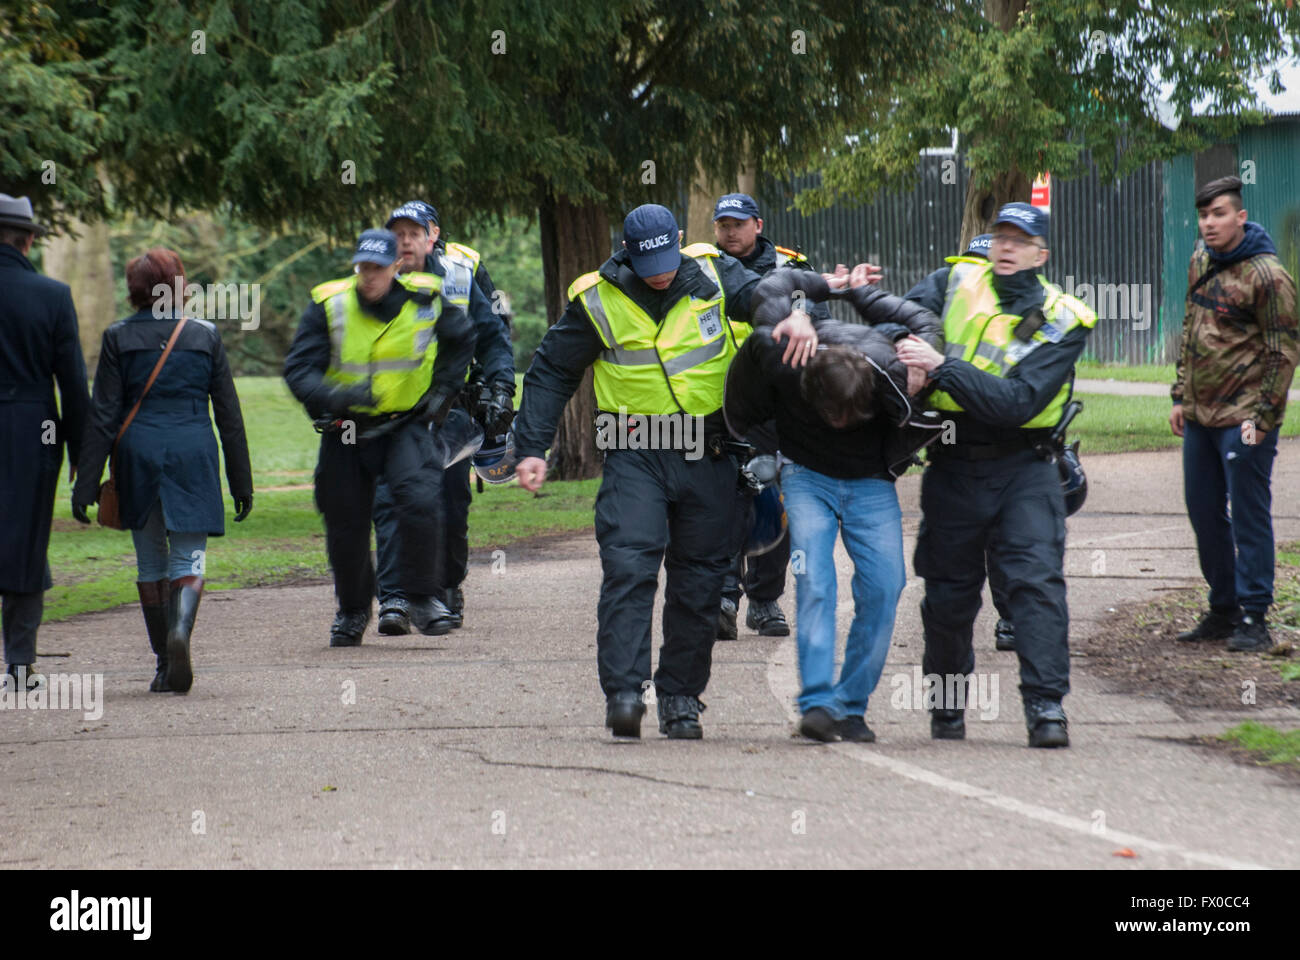 High Wycombe, Buckinghamshire, UK. 9th April 2016. A counter-protester is arrested in a local park on suspicion - Stock Image